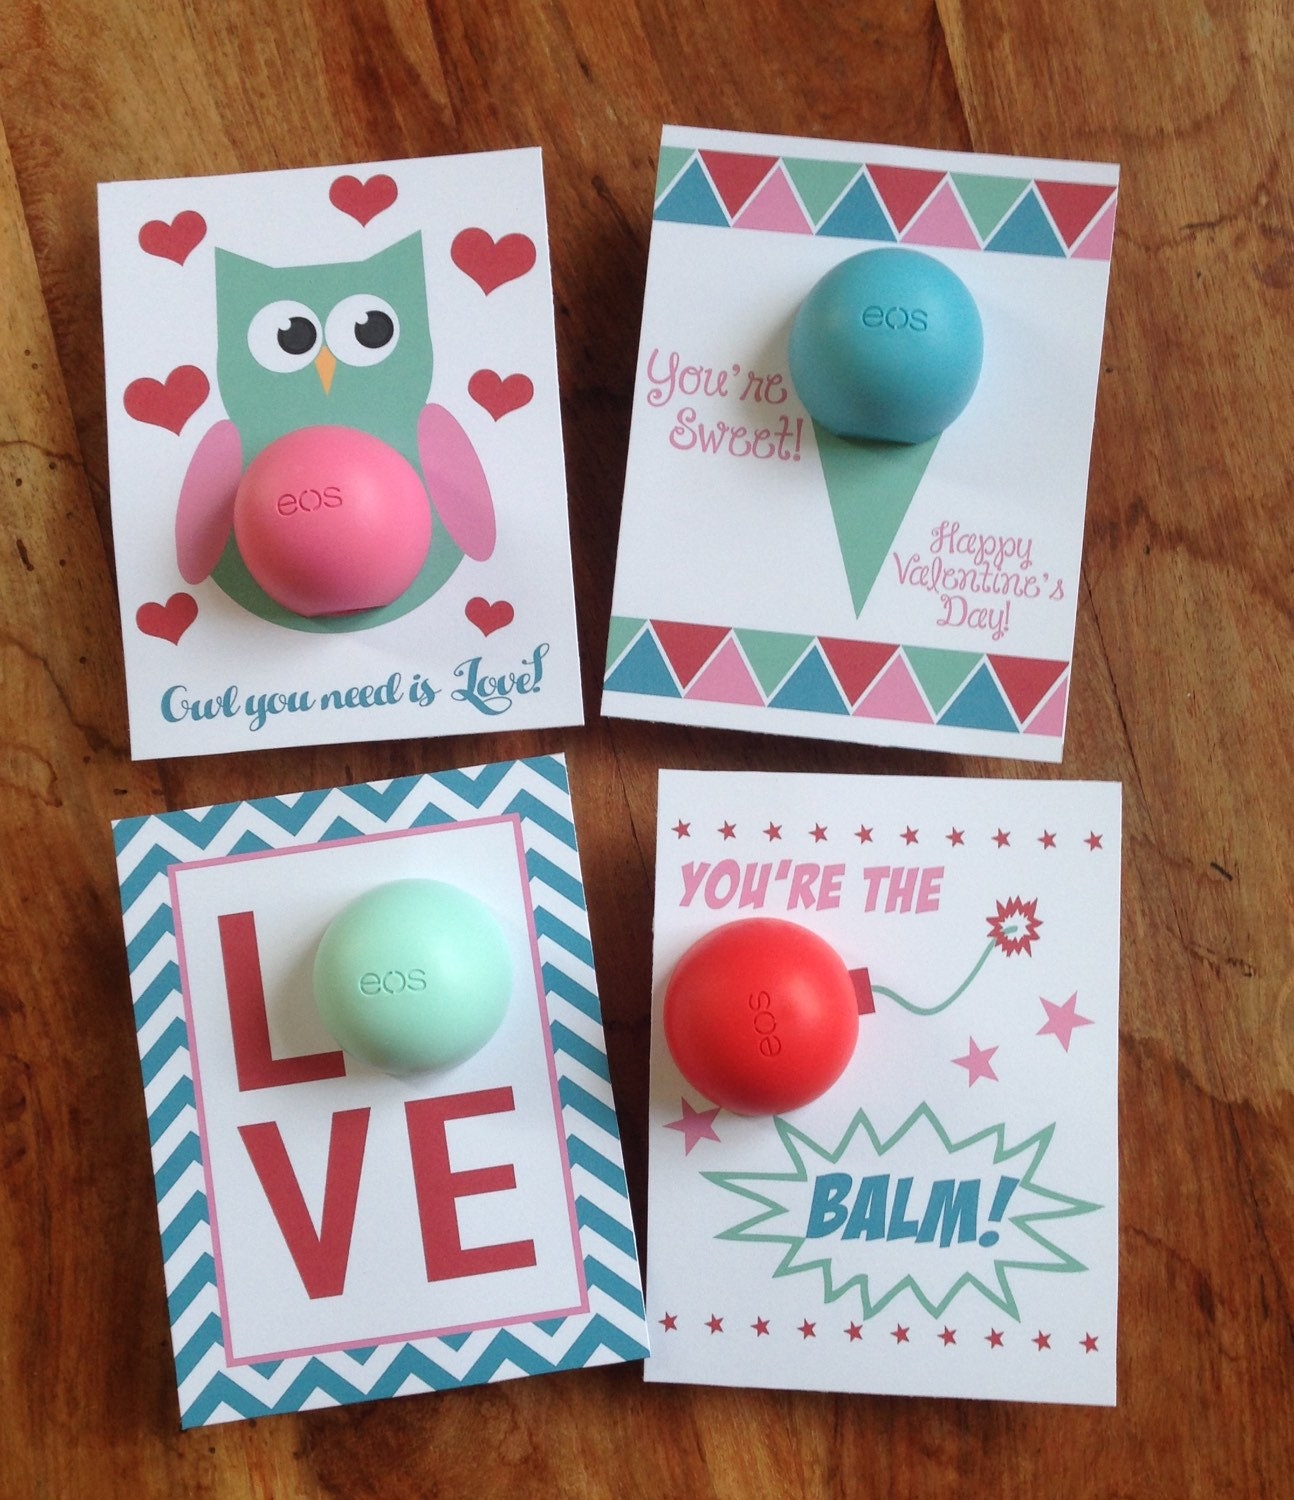 Valentine's Day Cards/gift Tags For EOS Lip Balm